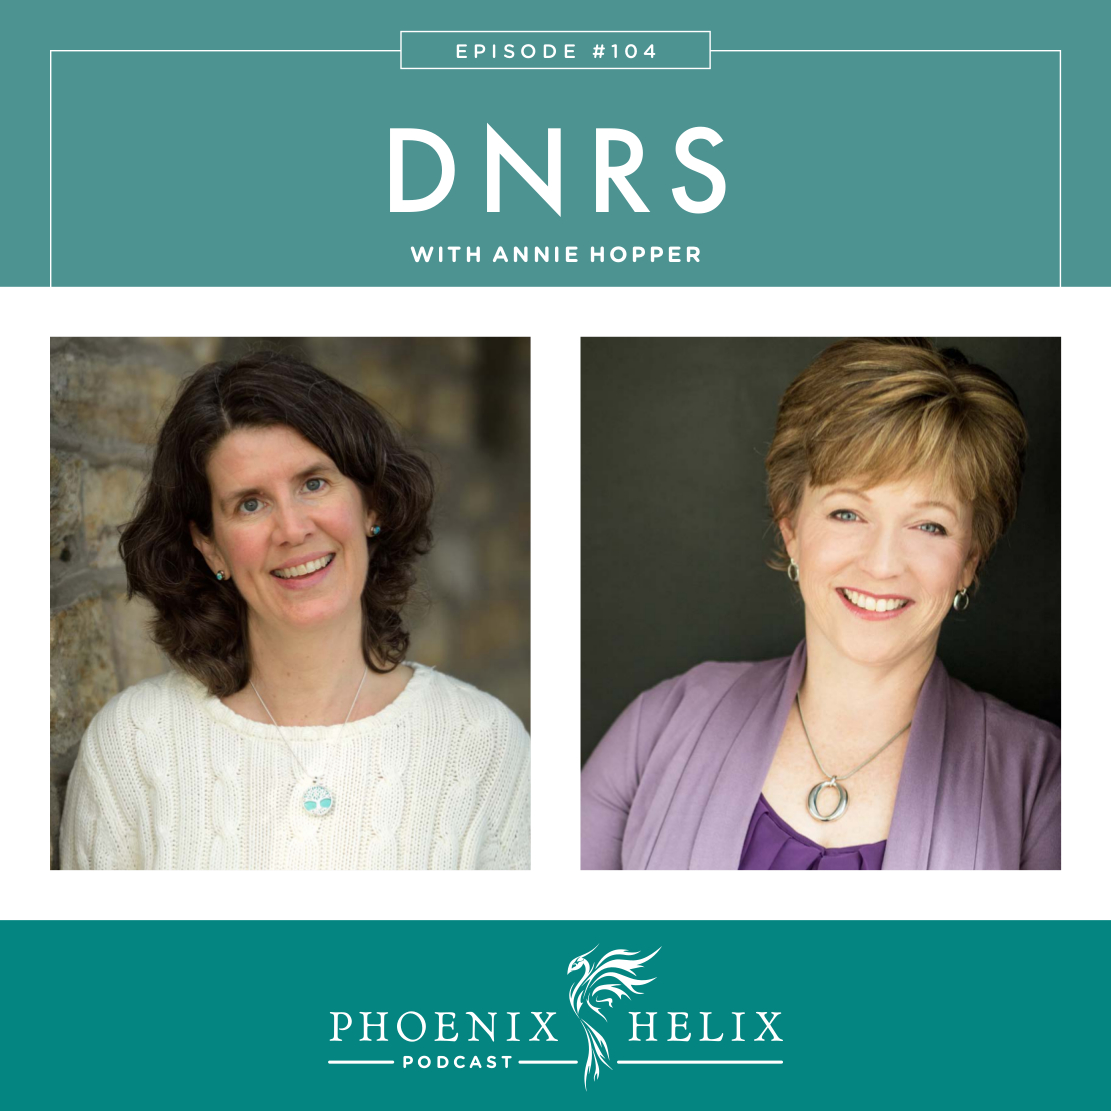 DNRS with Annie Hopper | Phoenix Helix Podcast